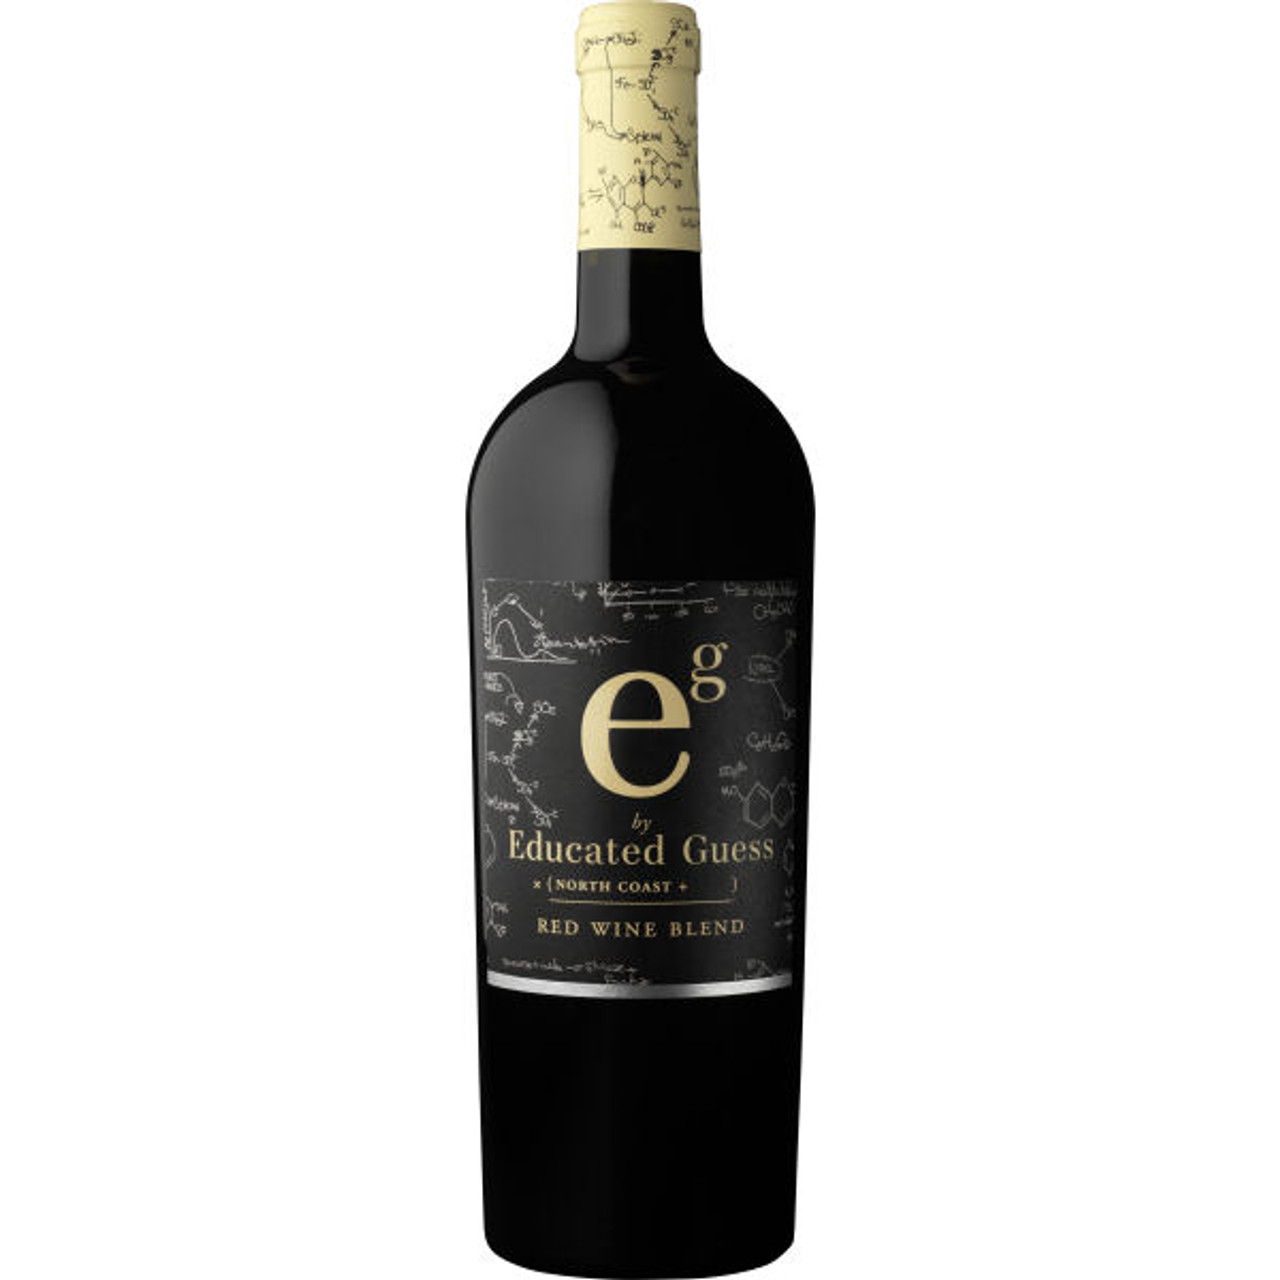 Educated Guess North Coast Red Blend